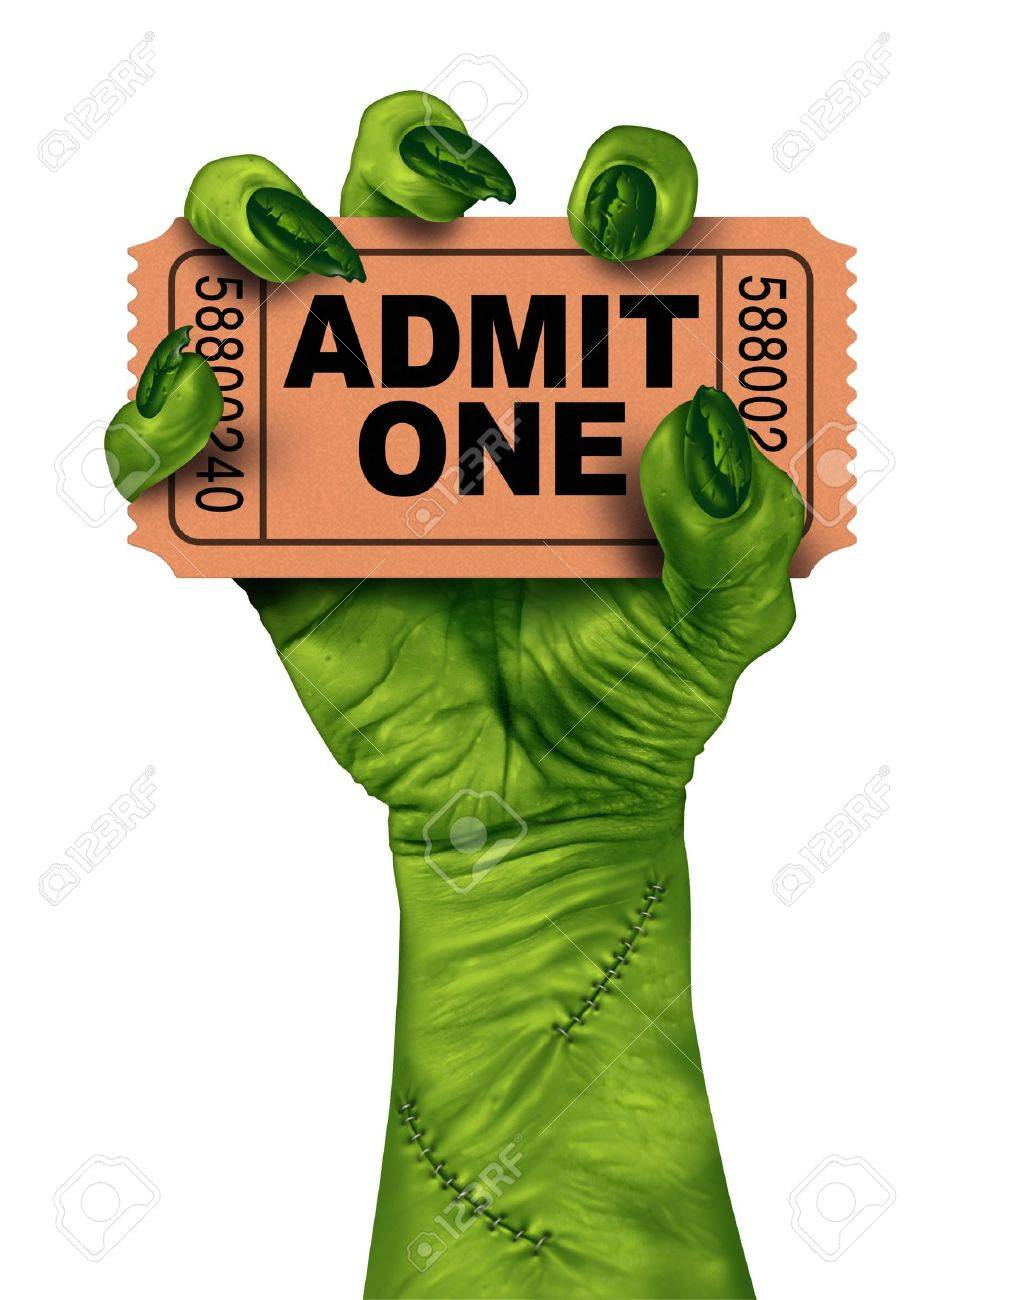 Monster movies with a zombie hand holding a cinema or theater ticket stub as a creepy halloween or scary entertainment symbol with textured green skin and stitches isolated on a white background Stock Photo - 20948527